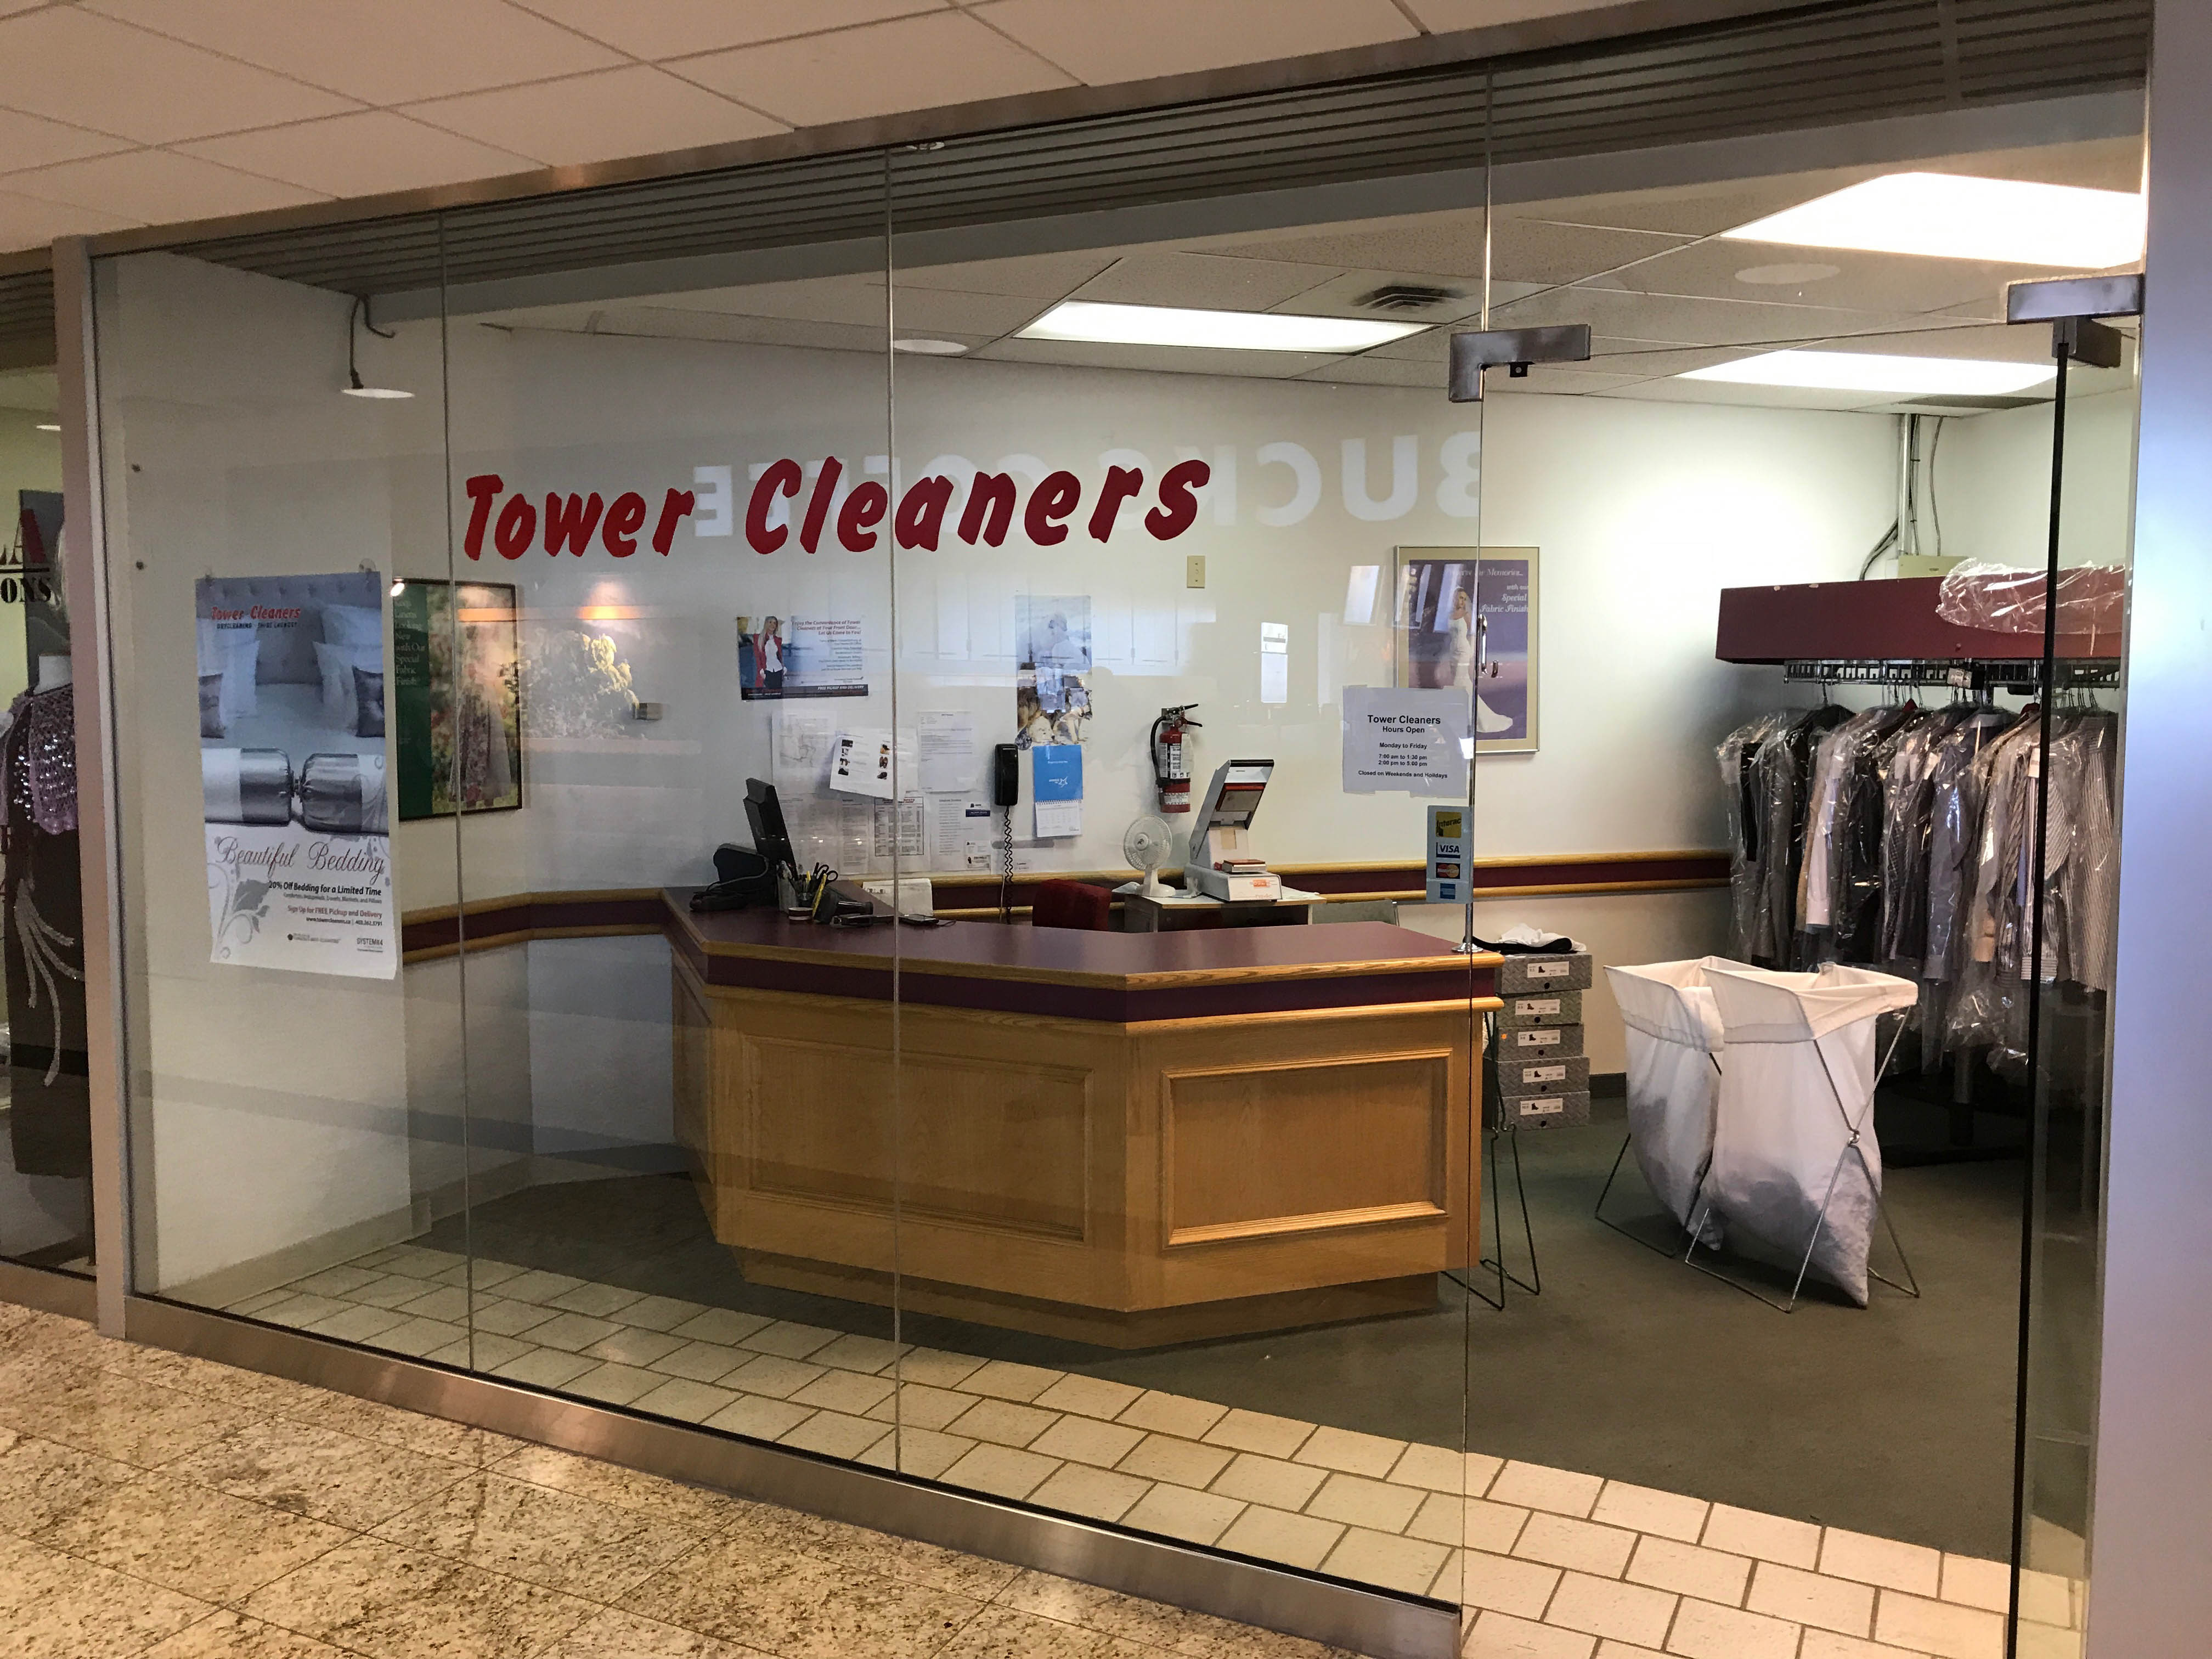 Intact Place Tower Cleaners store. #200, 321 - 6 Ave SW, Calgary, Alberta, (403) 269-2433